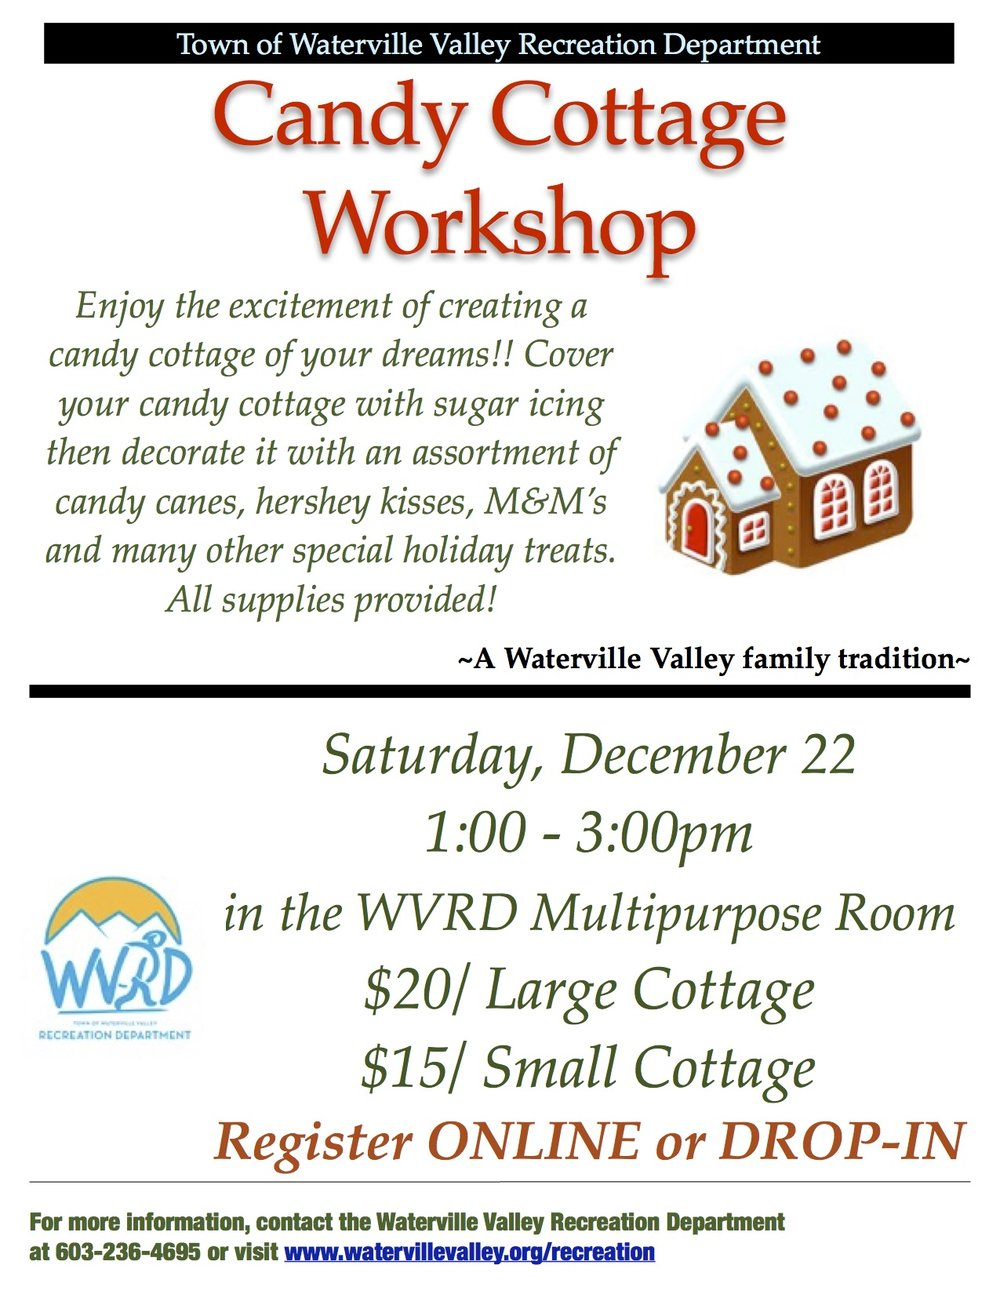 It is Candy Cottage season! Come to the rec to enjoy this amazing Waterville Valley tradition. Start by choosing either a small or large cottage, from there cover your cottage with frosting and choose from the large variety of candy decorations! There is no better holiday family craft than a candy cottage!